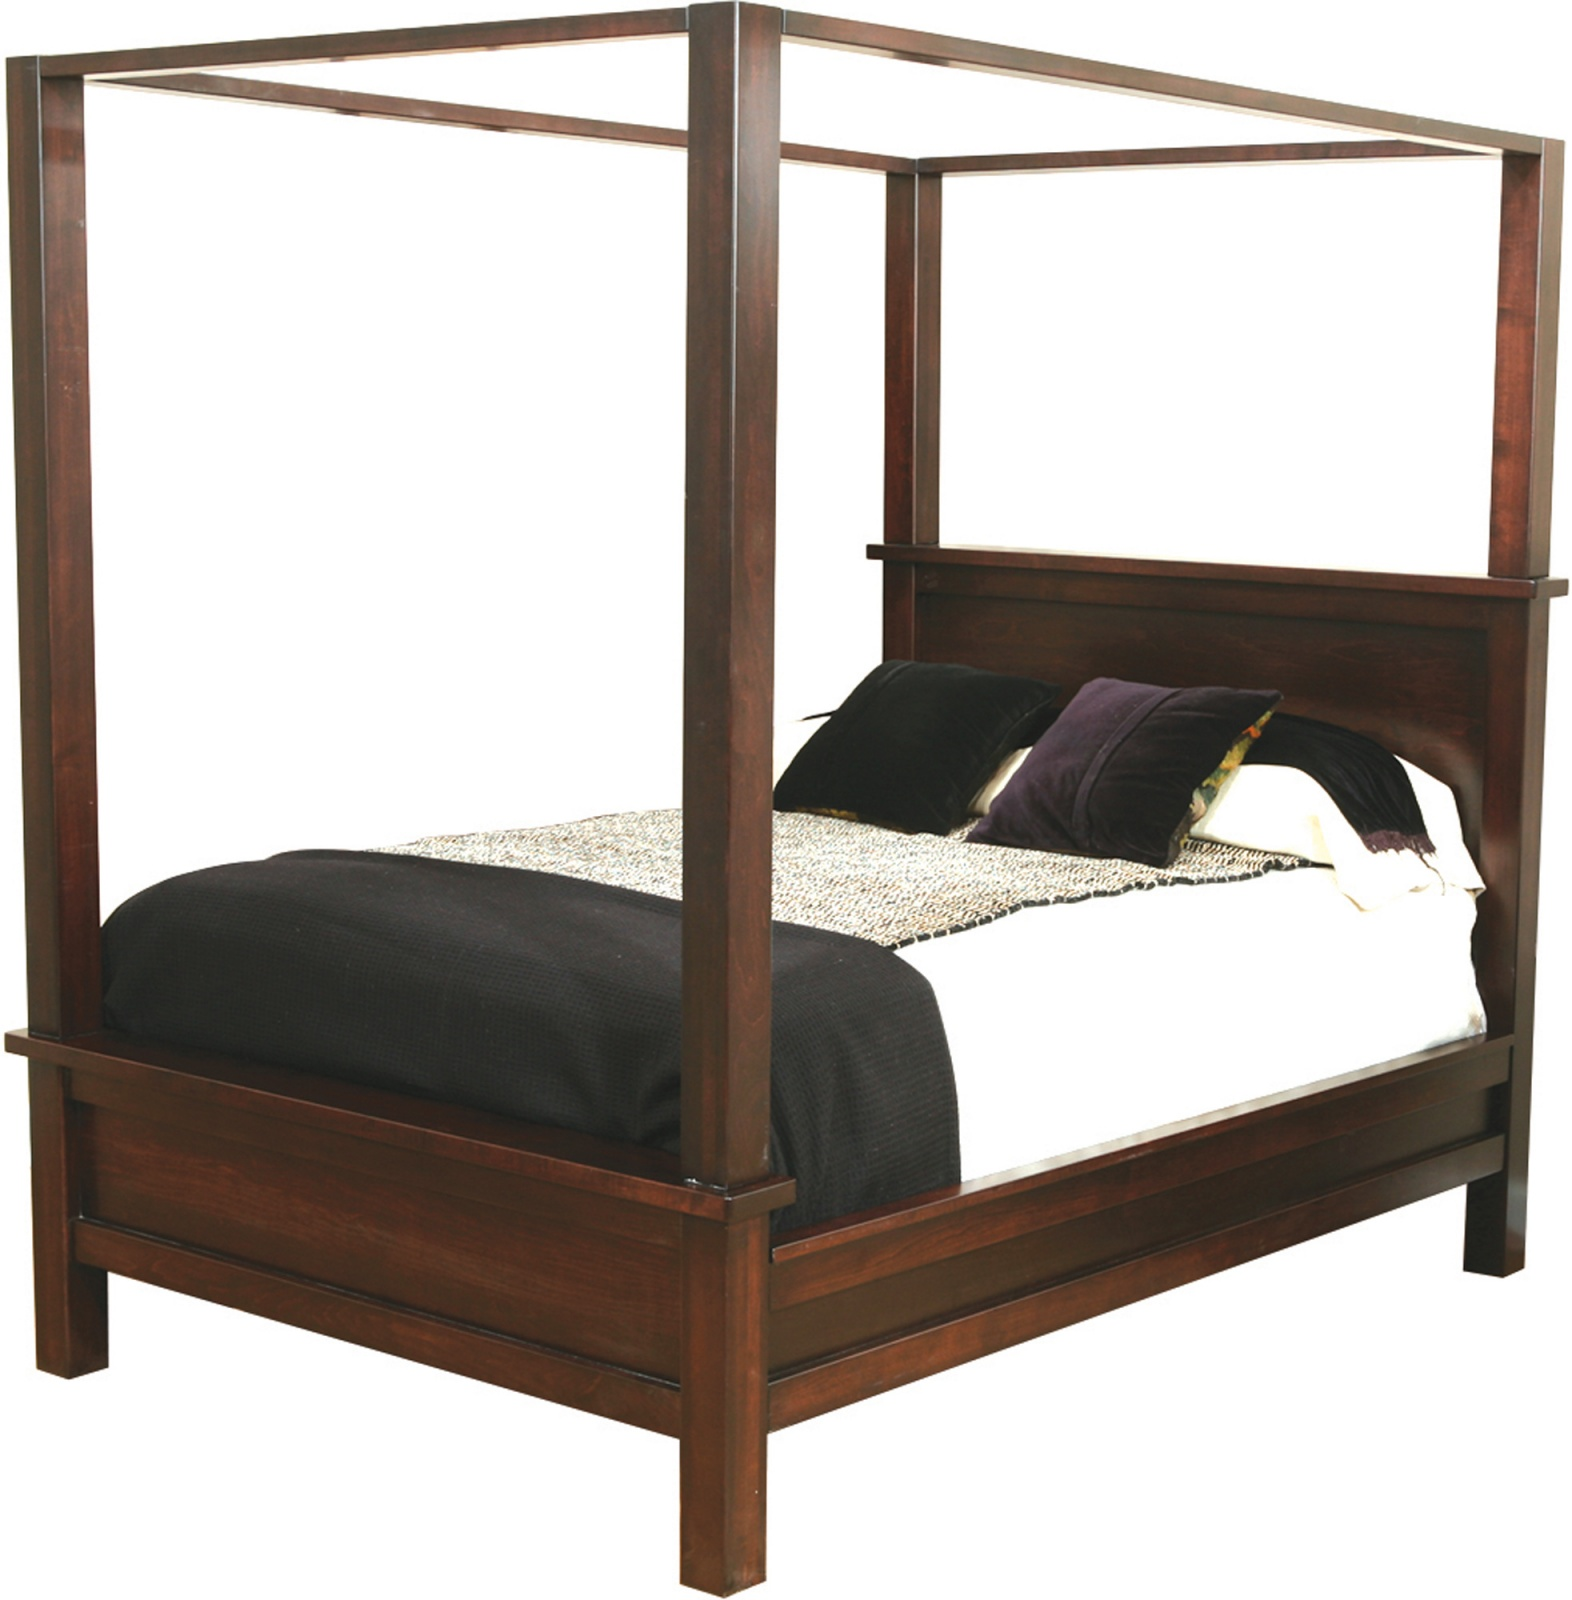 Beds Kings Furniture